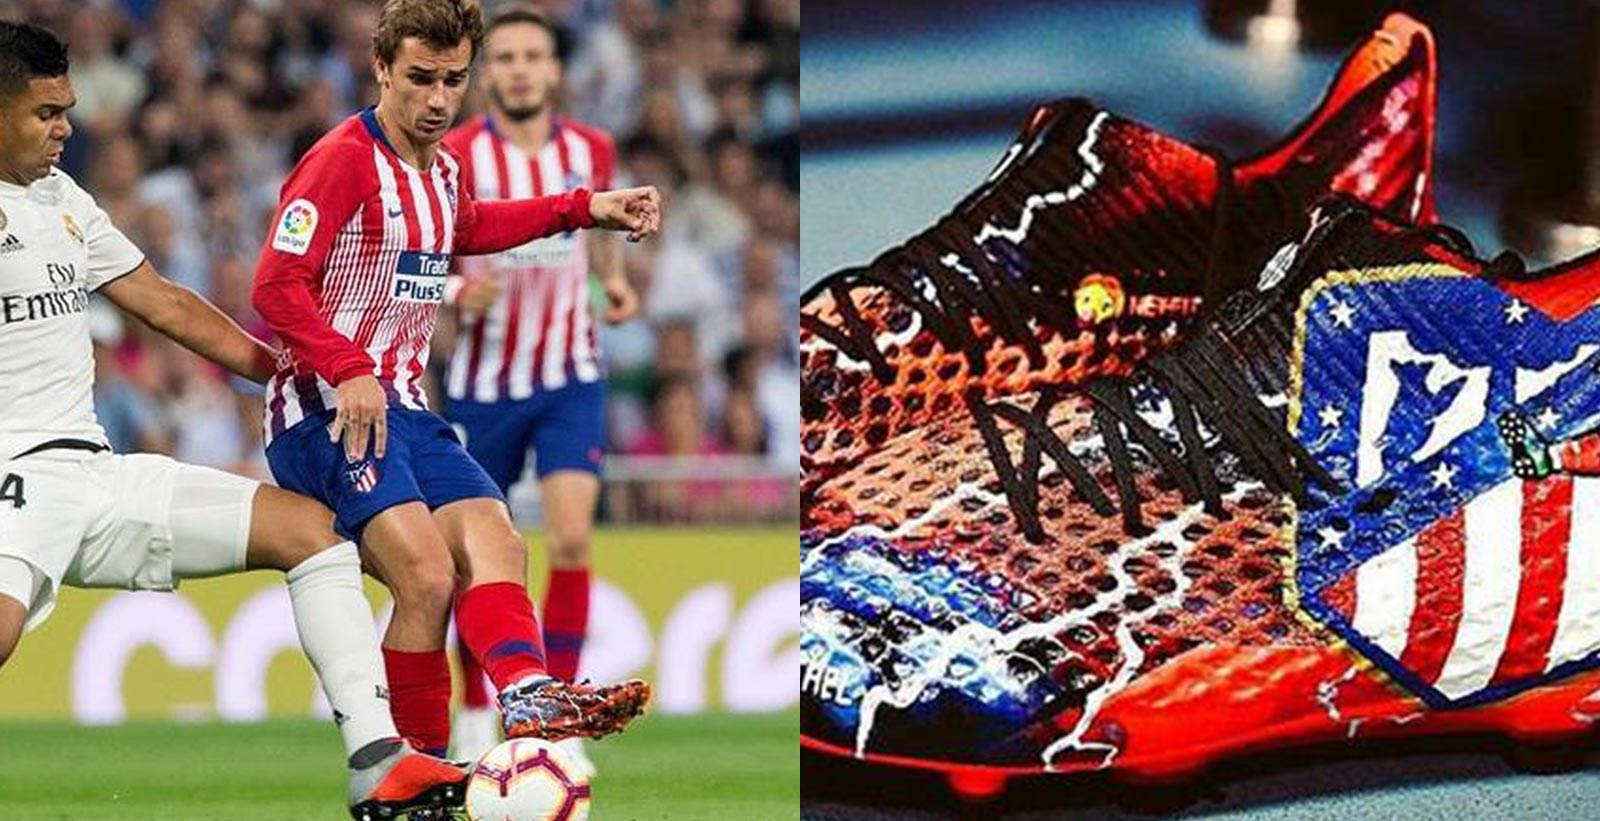 4f2cdfa36 Antoine Griezmann stood out in yesterday s clash between Real Madrid and  Atletico Madrid wearing extreme-looking football boots.